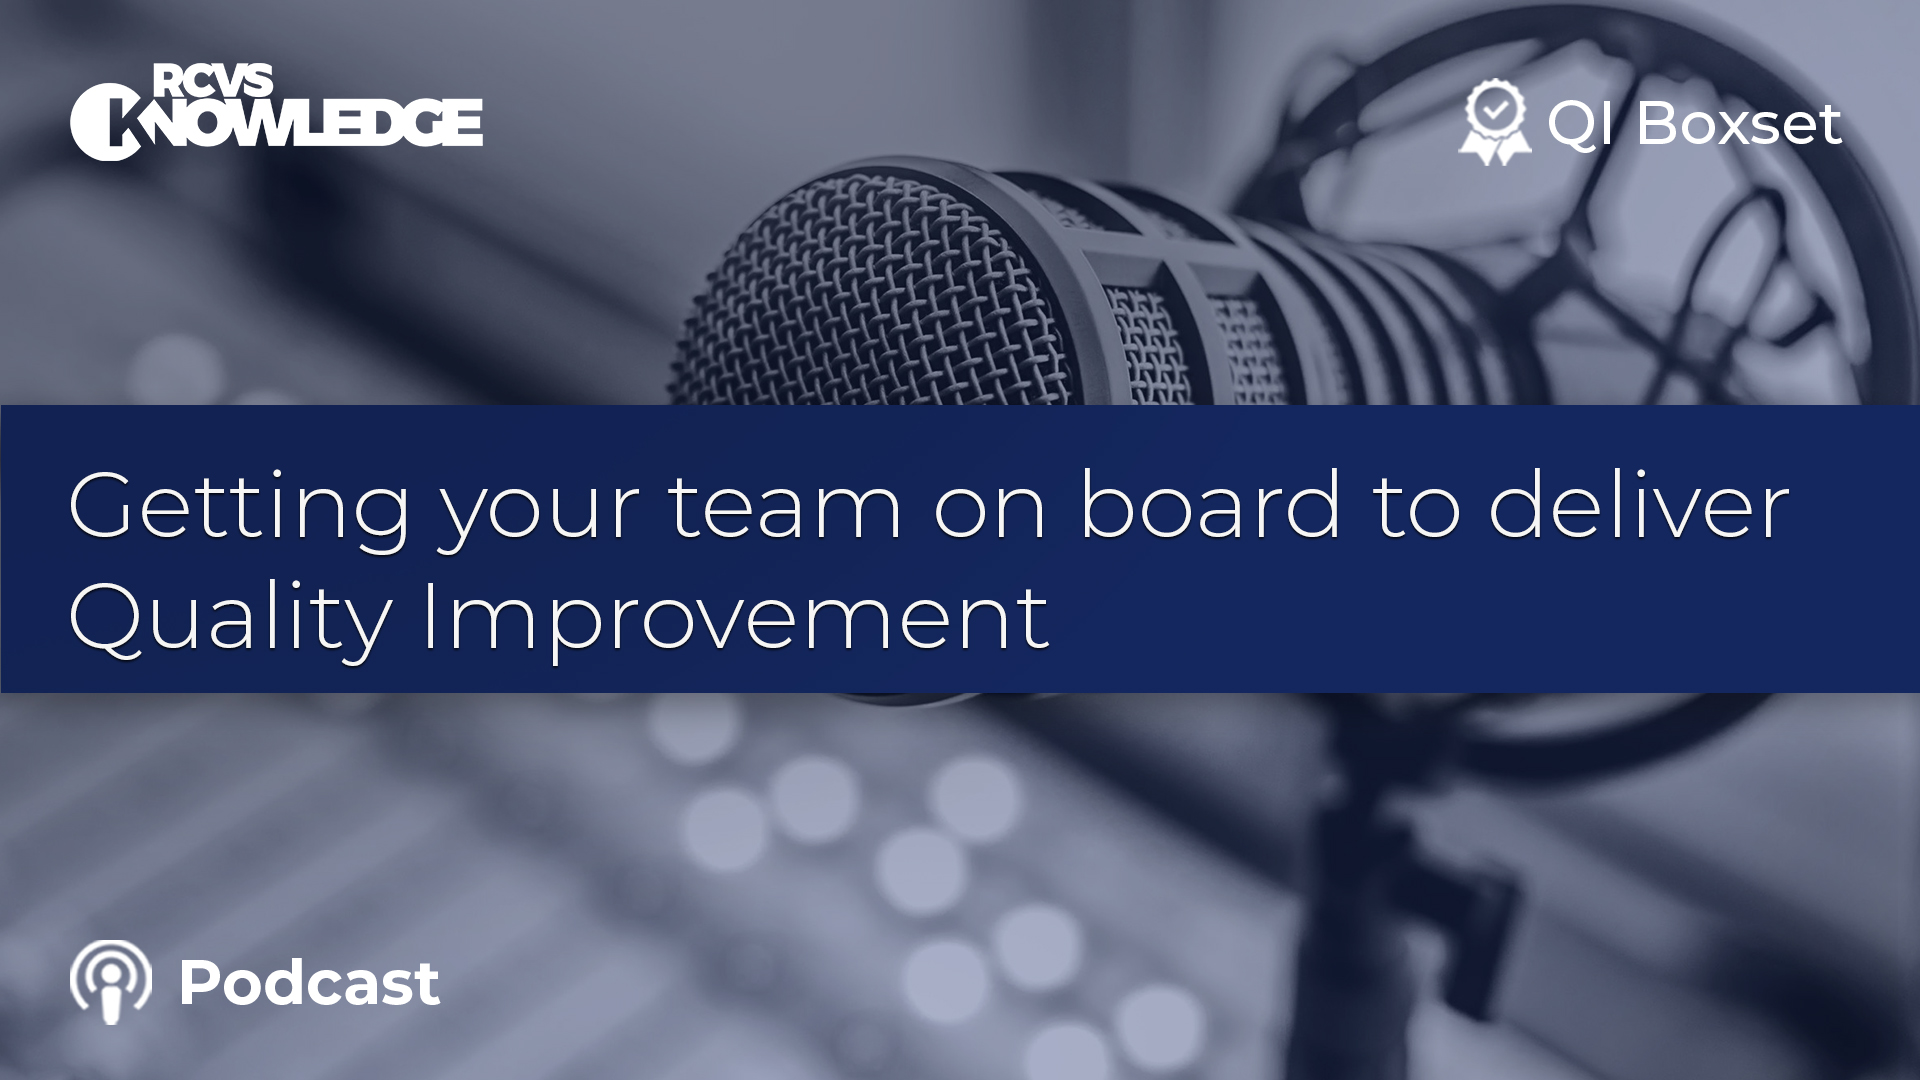 Getting your team on board to deliver Quality Improvement